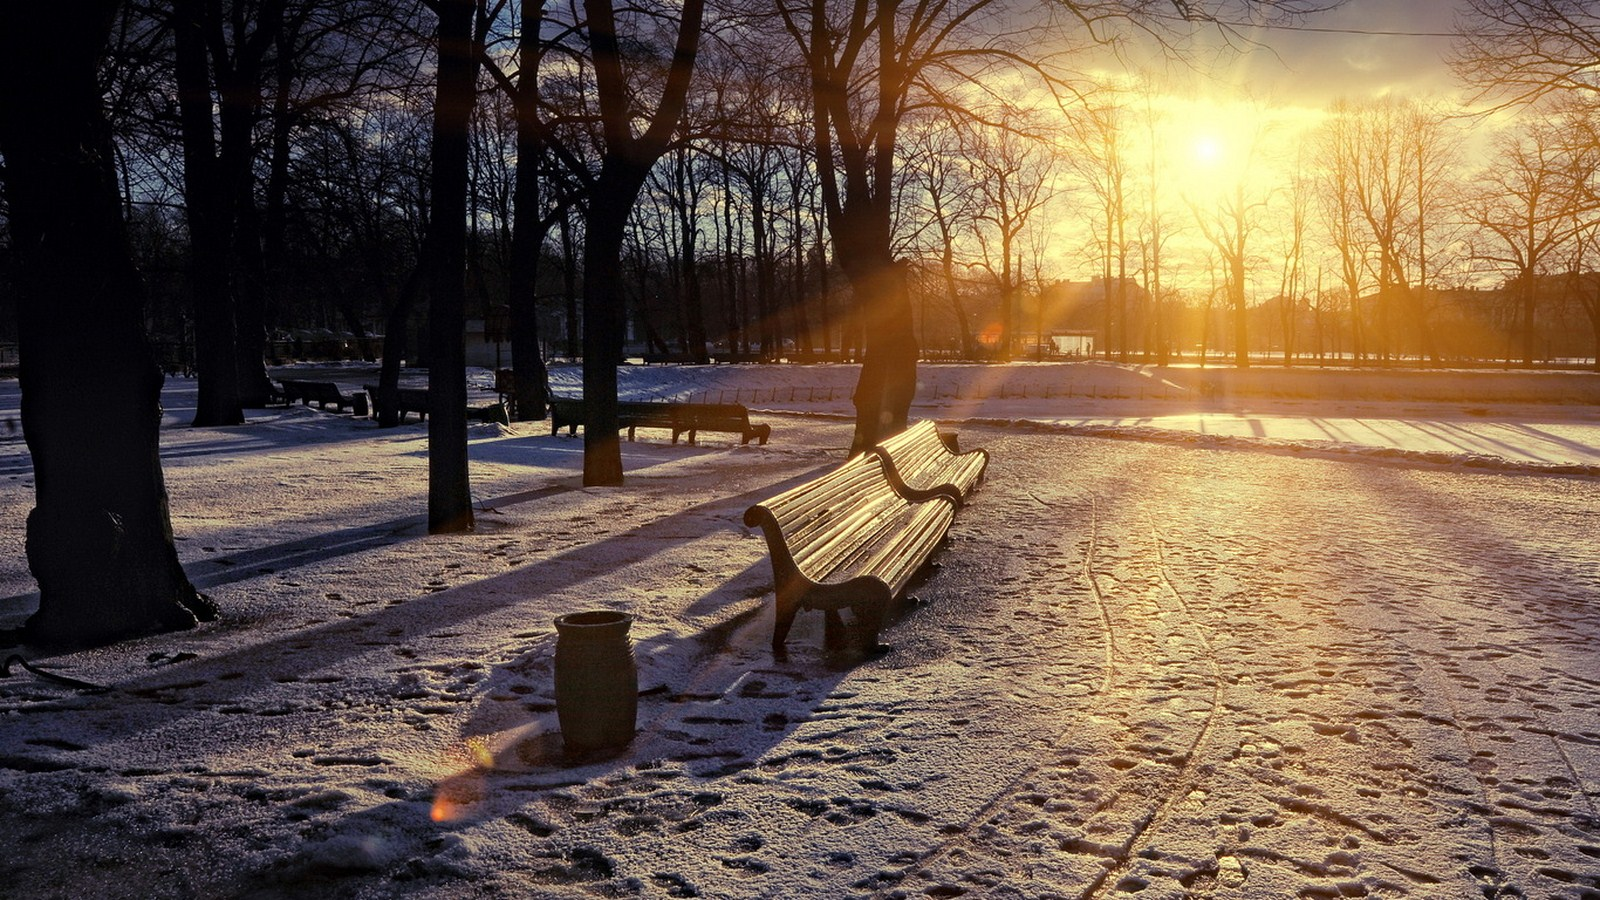 Park benches trees sun snow melts